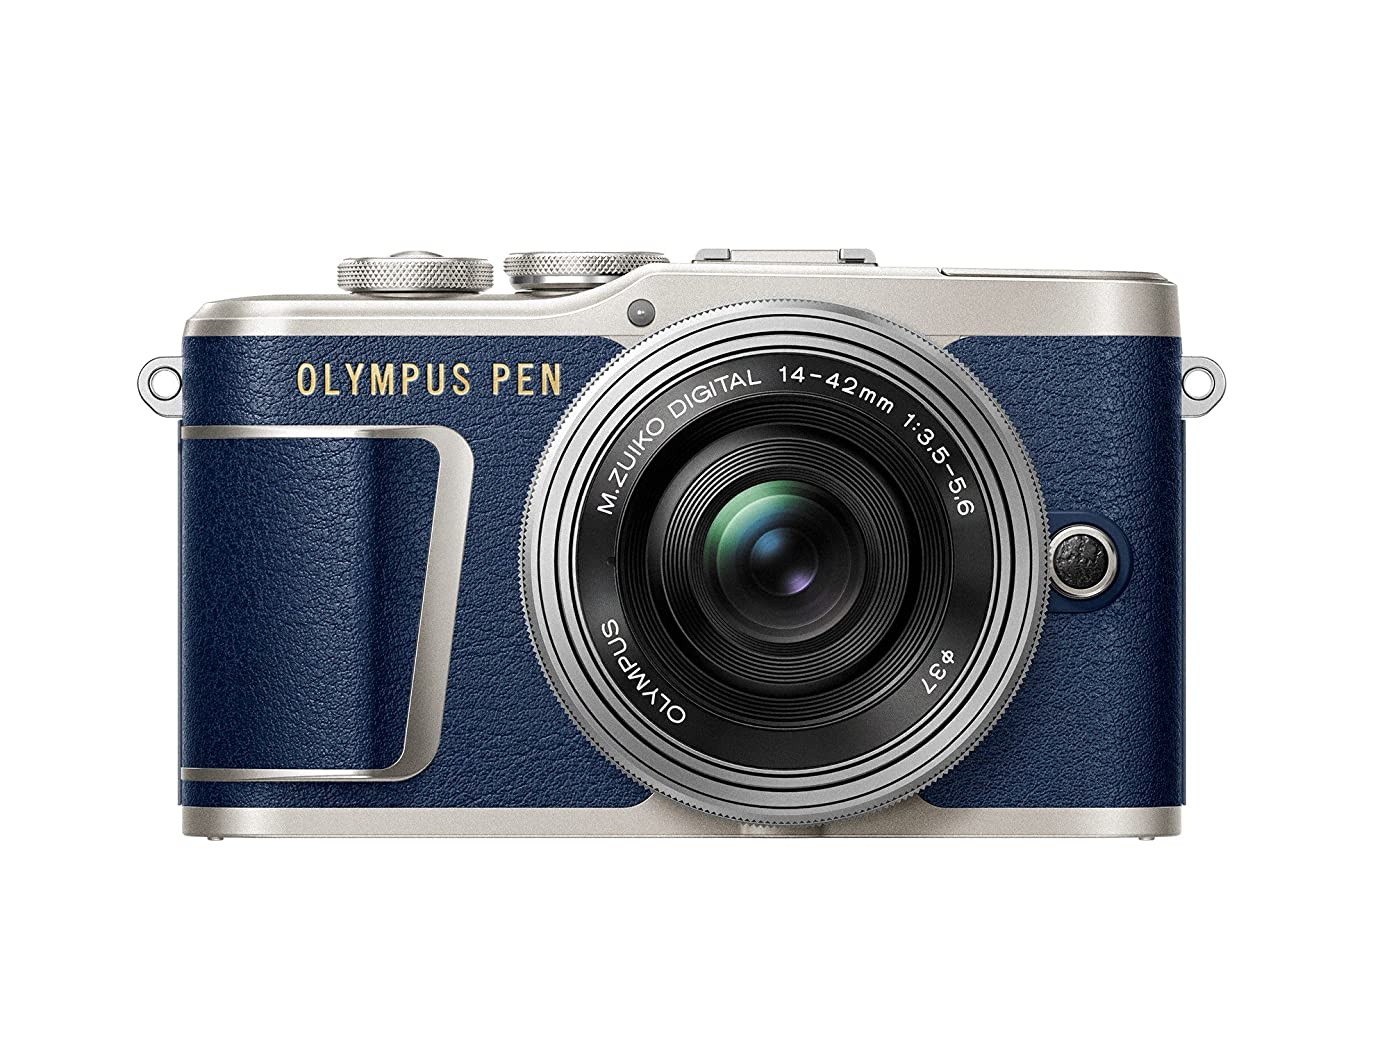 Olympus Pen E-PL9 Kit with 14-42mm EZ Lens, Camera Bag, and Memory Card (Denim Blue Limited Edition)